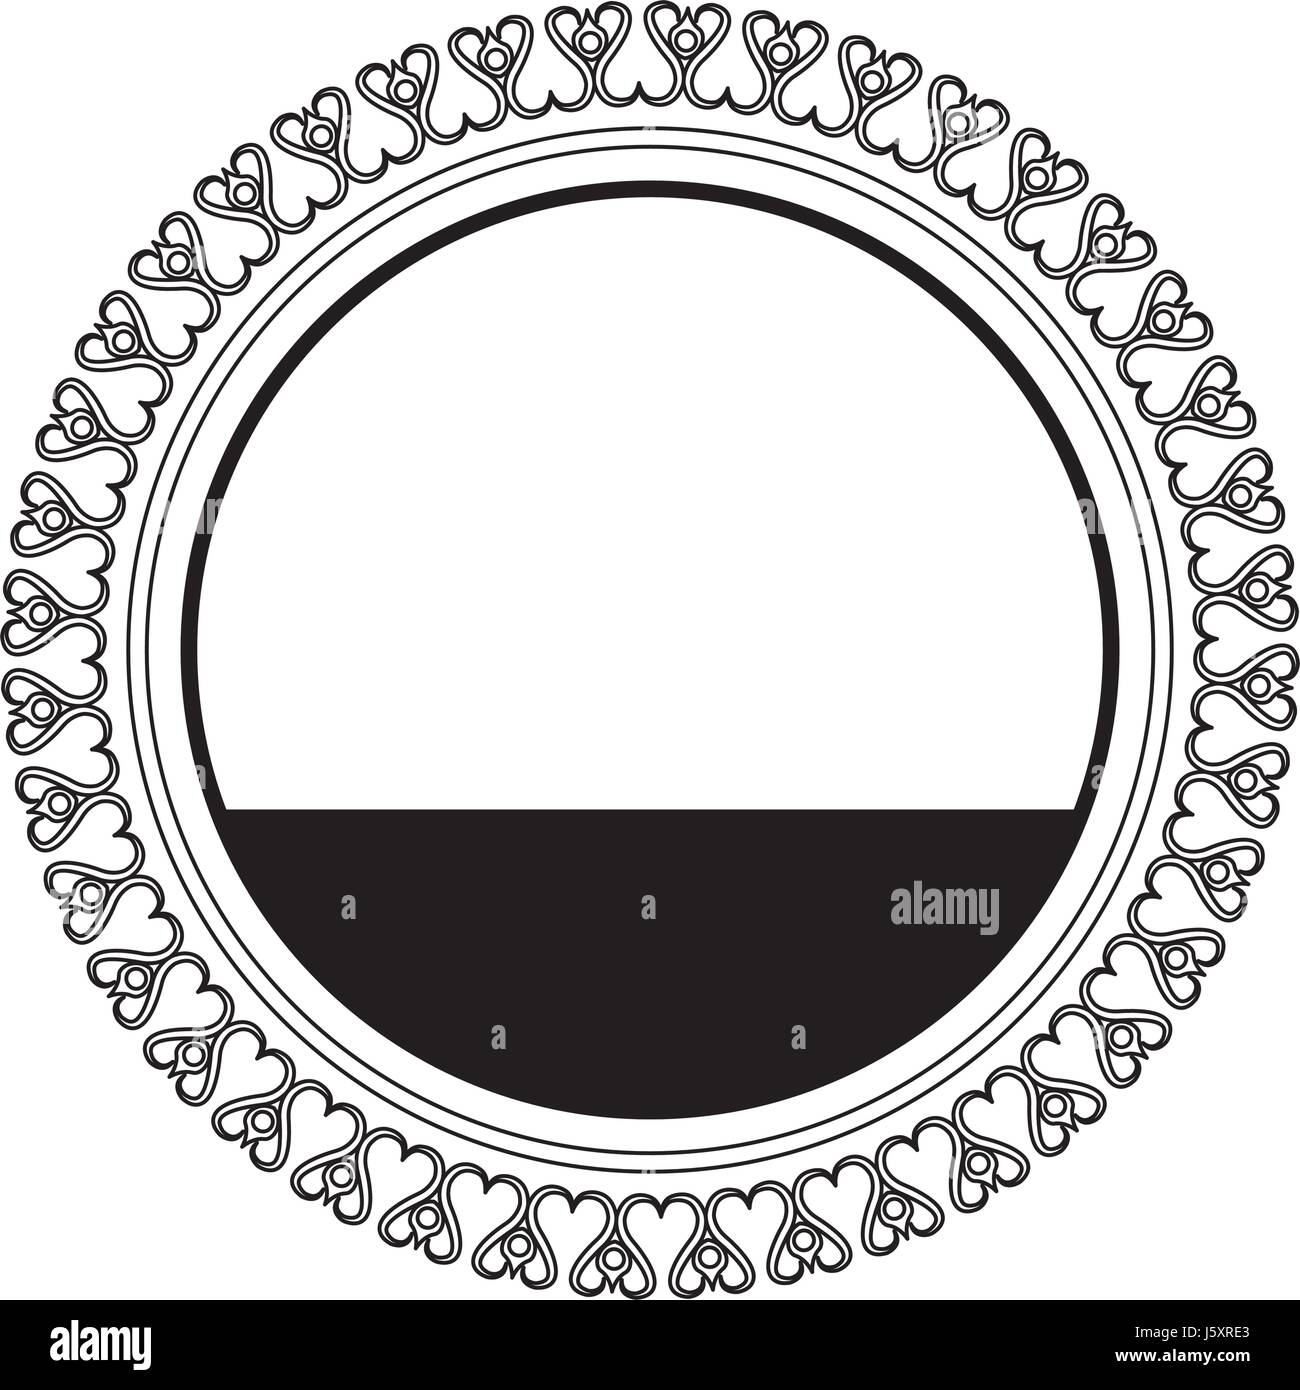 round decoration stamp flourish element template - Stock Image